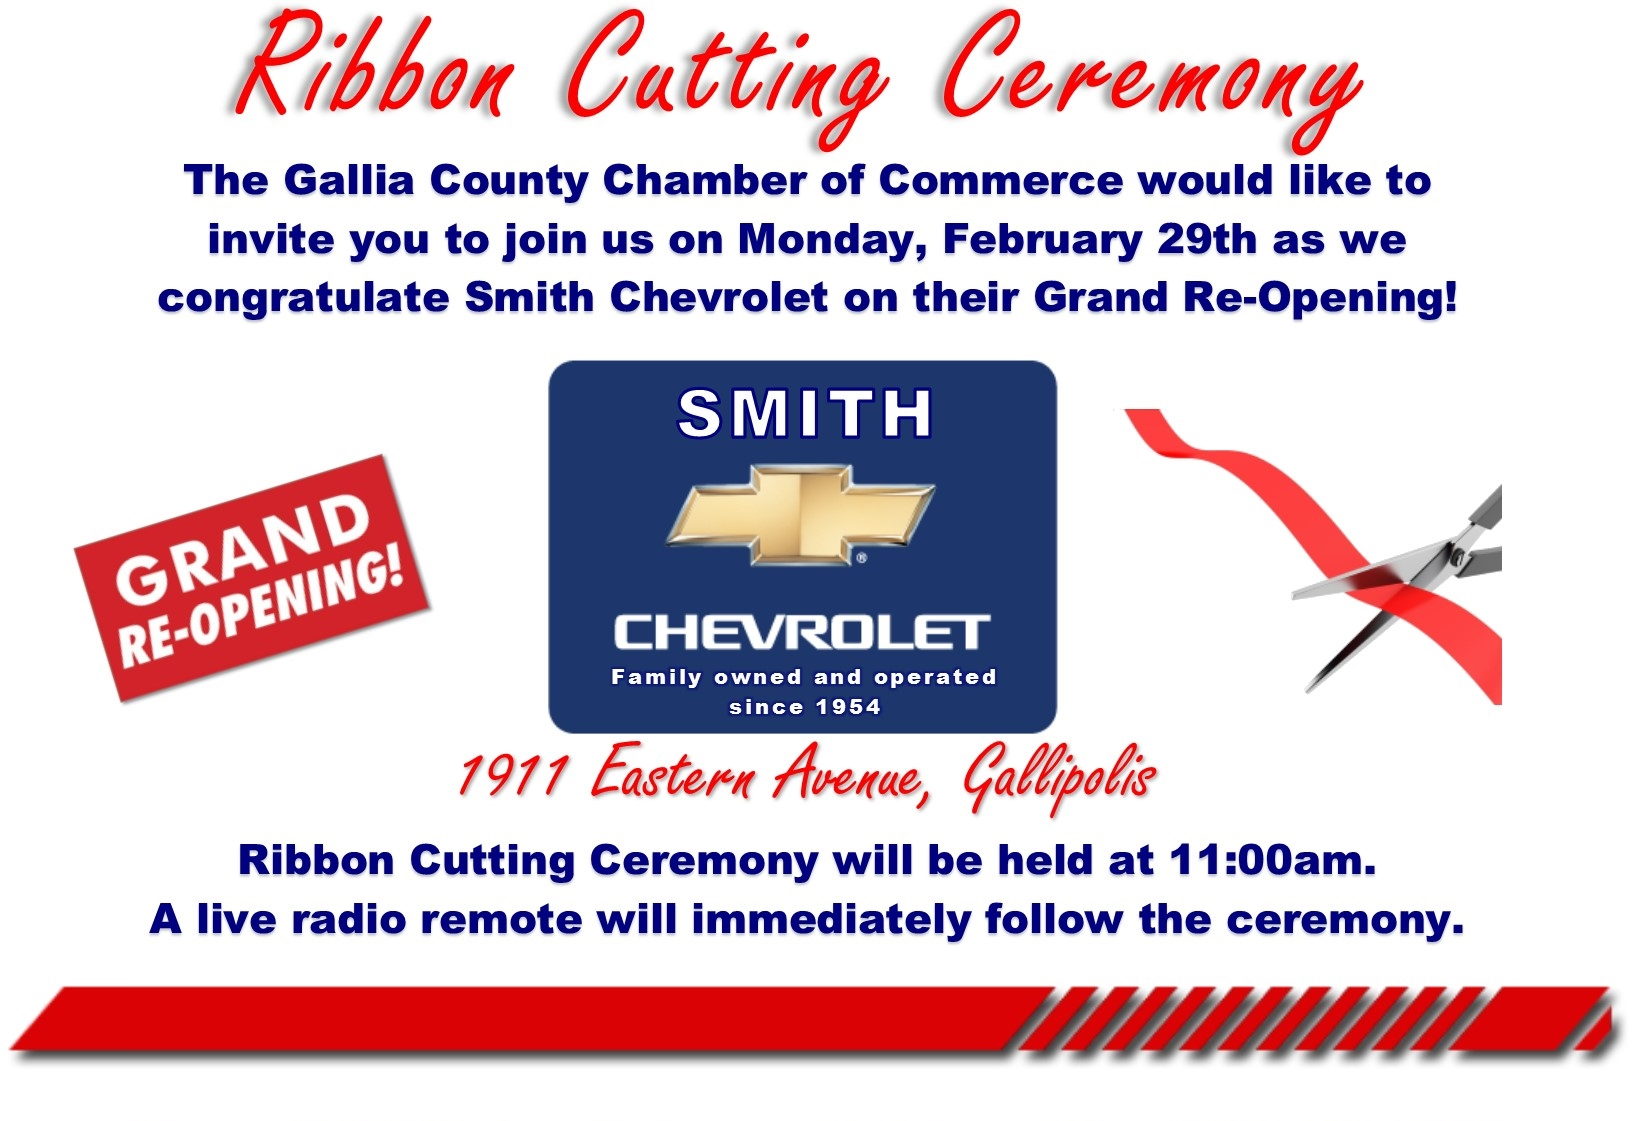 Smith Chevrolet Ribbon Cutting Postcard cropped